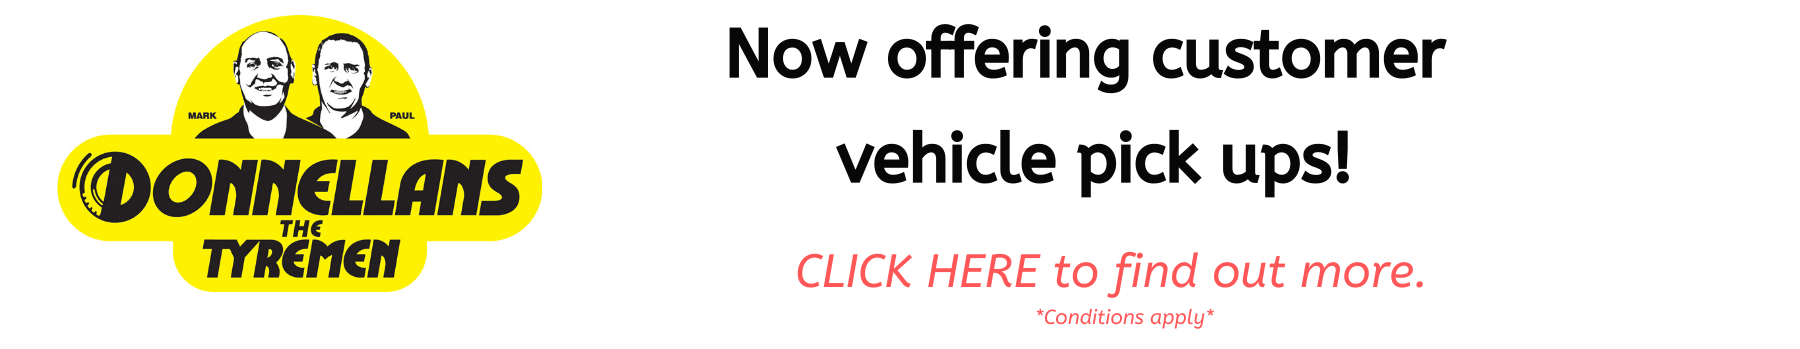 Now offering customer vehicle pick ups!